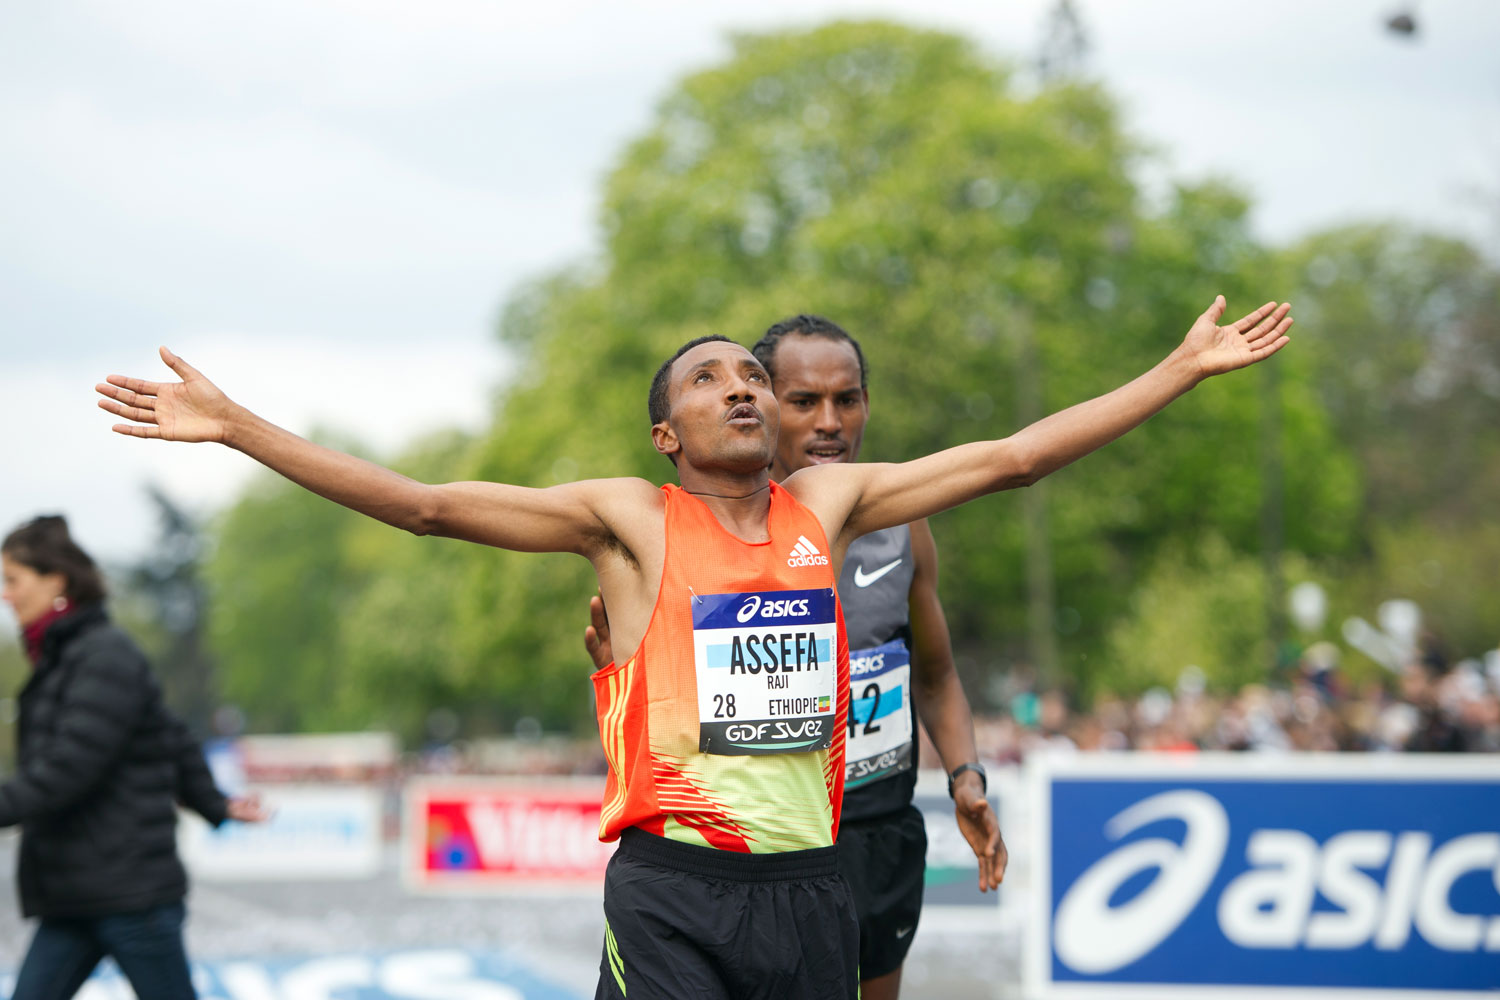 Raji Assefa (L) crosses the finish line ahead of Sisay Jisa (R) during the 36th Paris Marathon in April 2012.